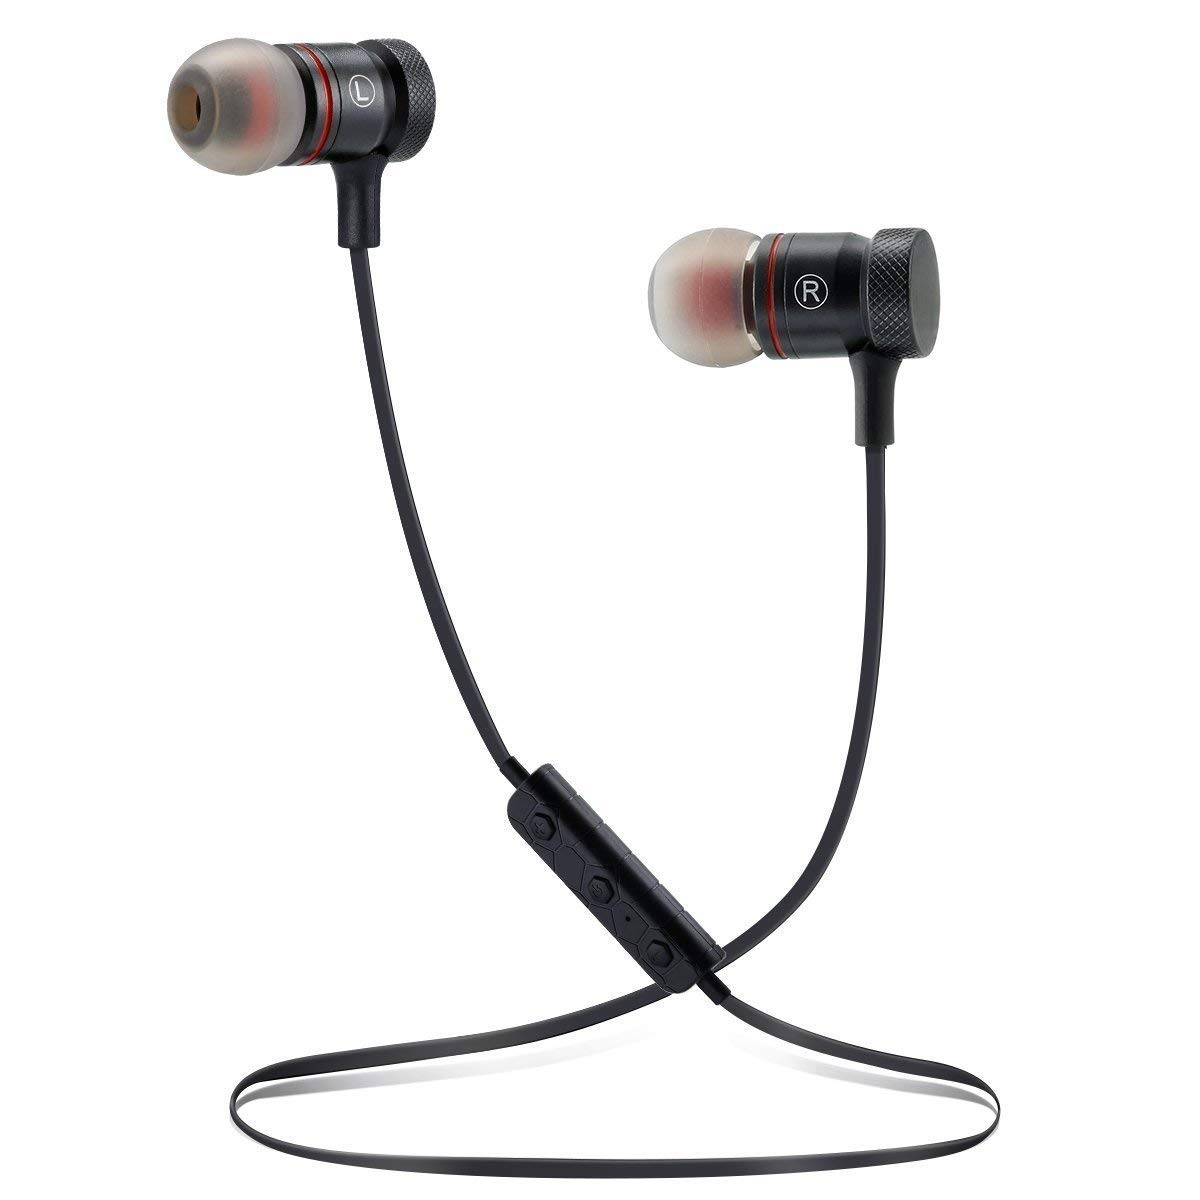 IPX7 Waterproof Wireless Headphones Sports In-ear Earbuds